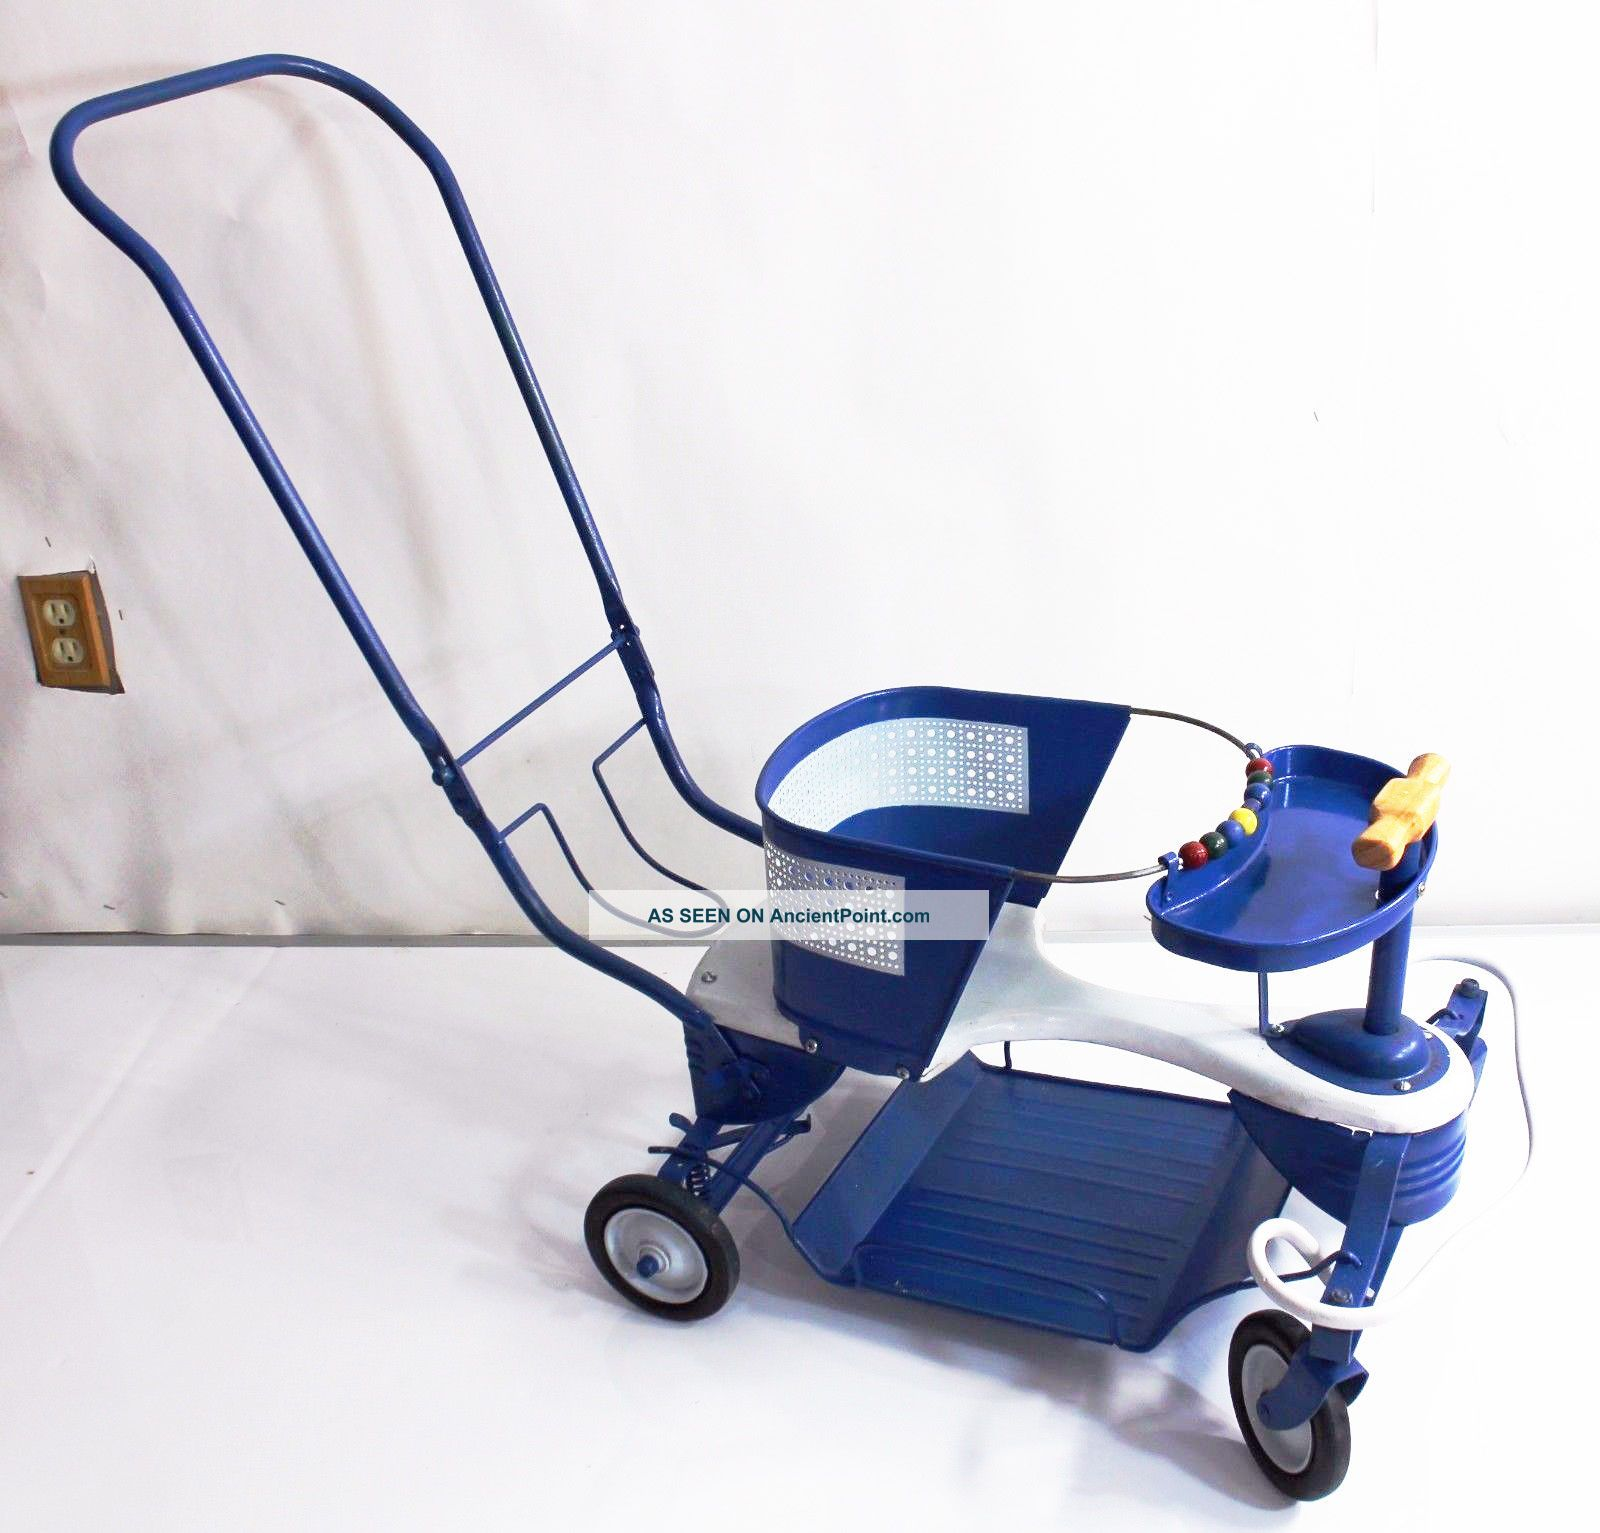 Vintage Antique Taylor Tot Baby Stroller Walker Blue Metal Baby Carriage Baby Carriages & Buggies photo